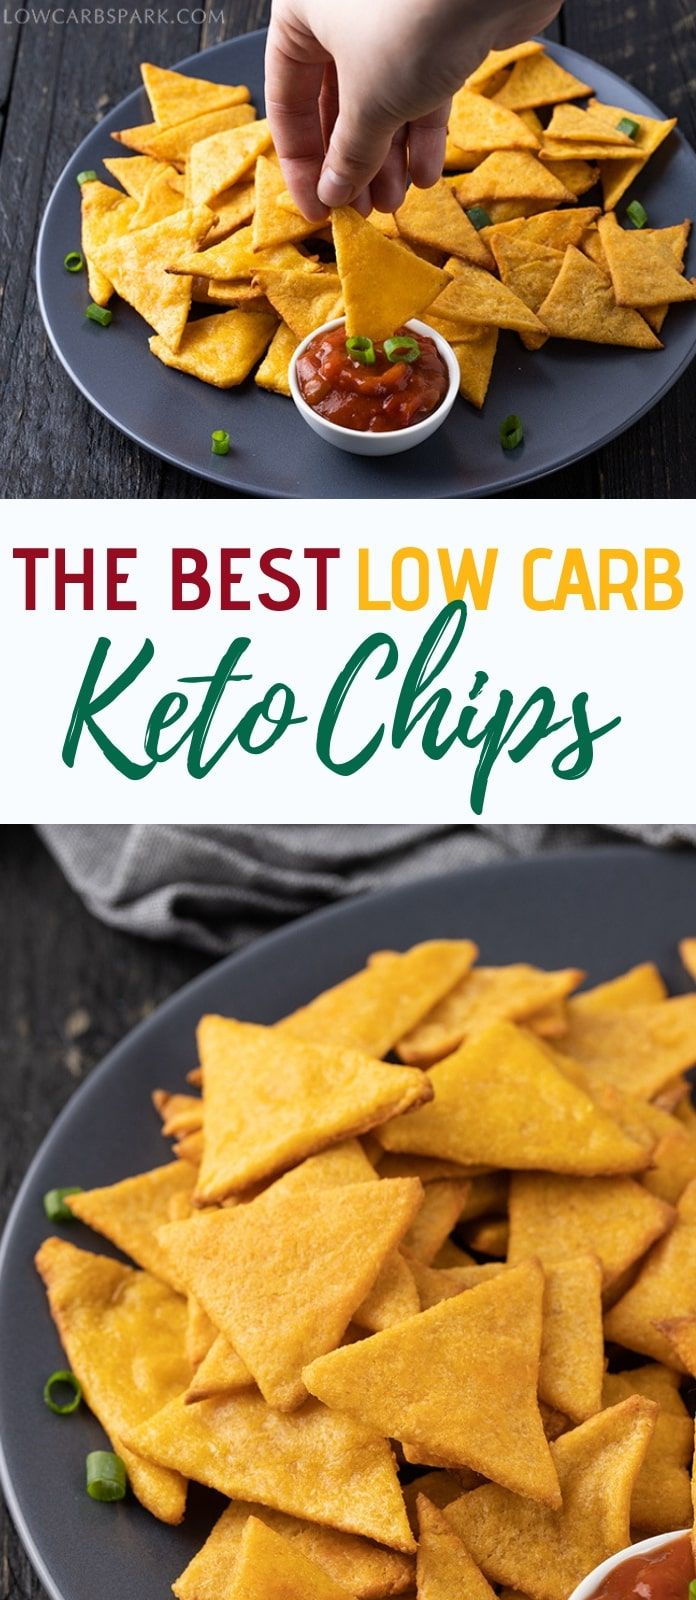 How to Make Homemade Low Carb 2g Carbs Keto Tortilla Chips images